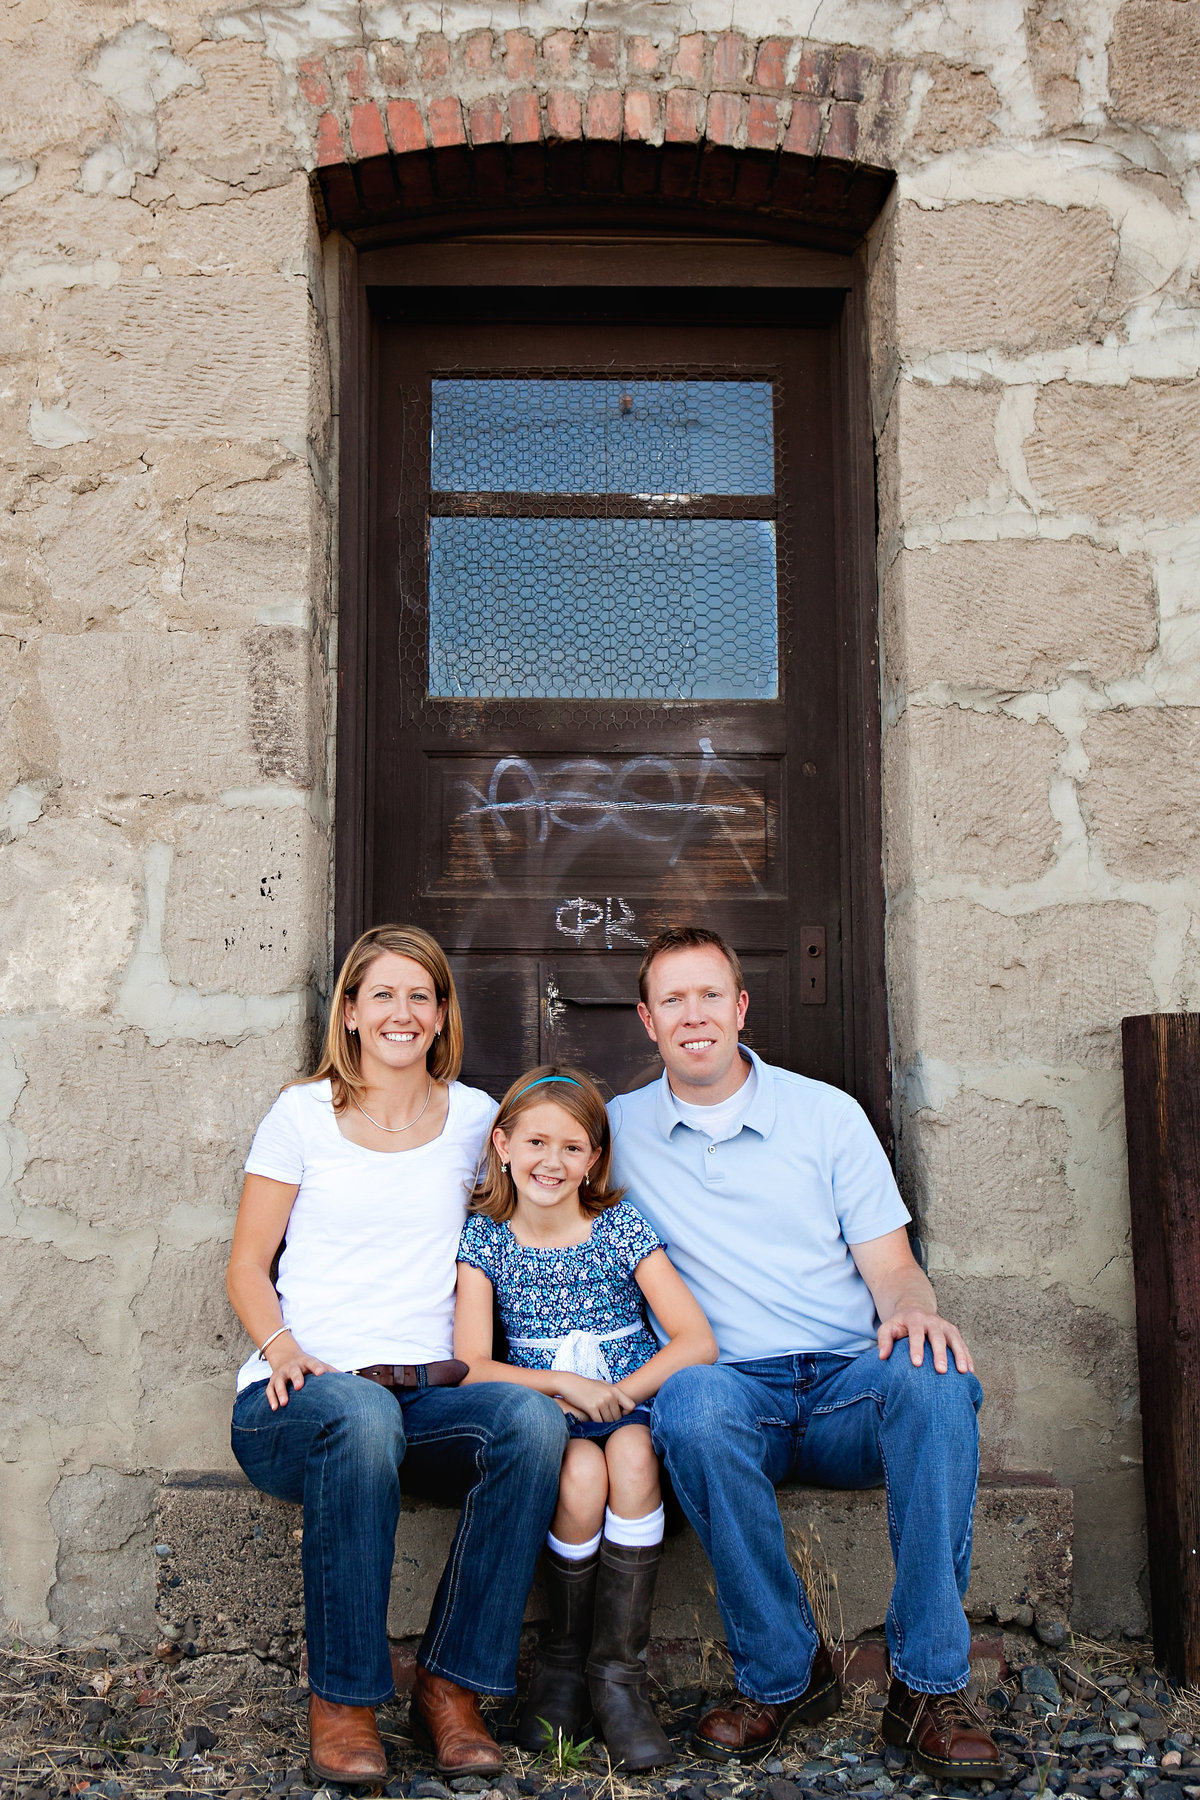 sun-valley-family-photographer-lifestyle-Boise-idaho-treasure-valley-meridian-nampa-eagle-mccall-emmett-mountain-home-photographer-lee-ann-norris082